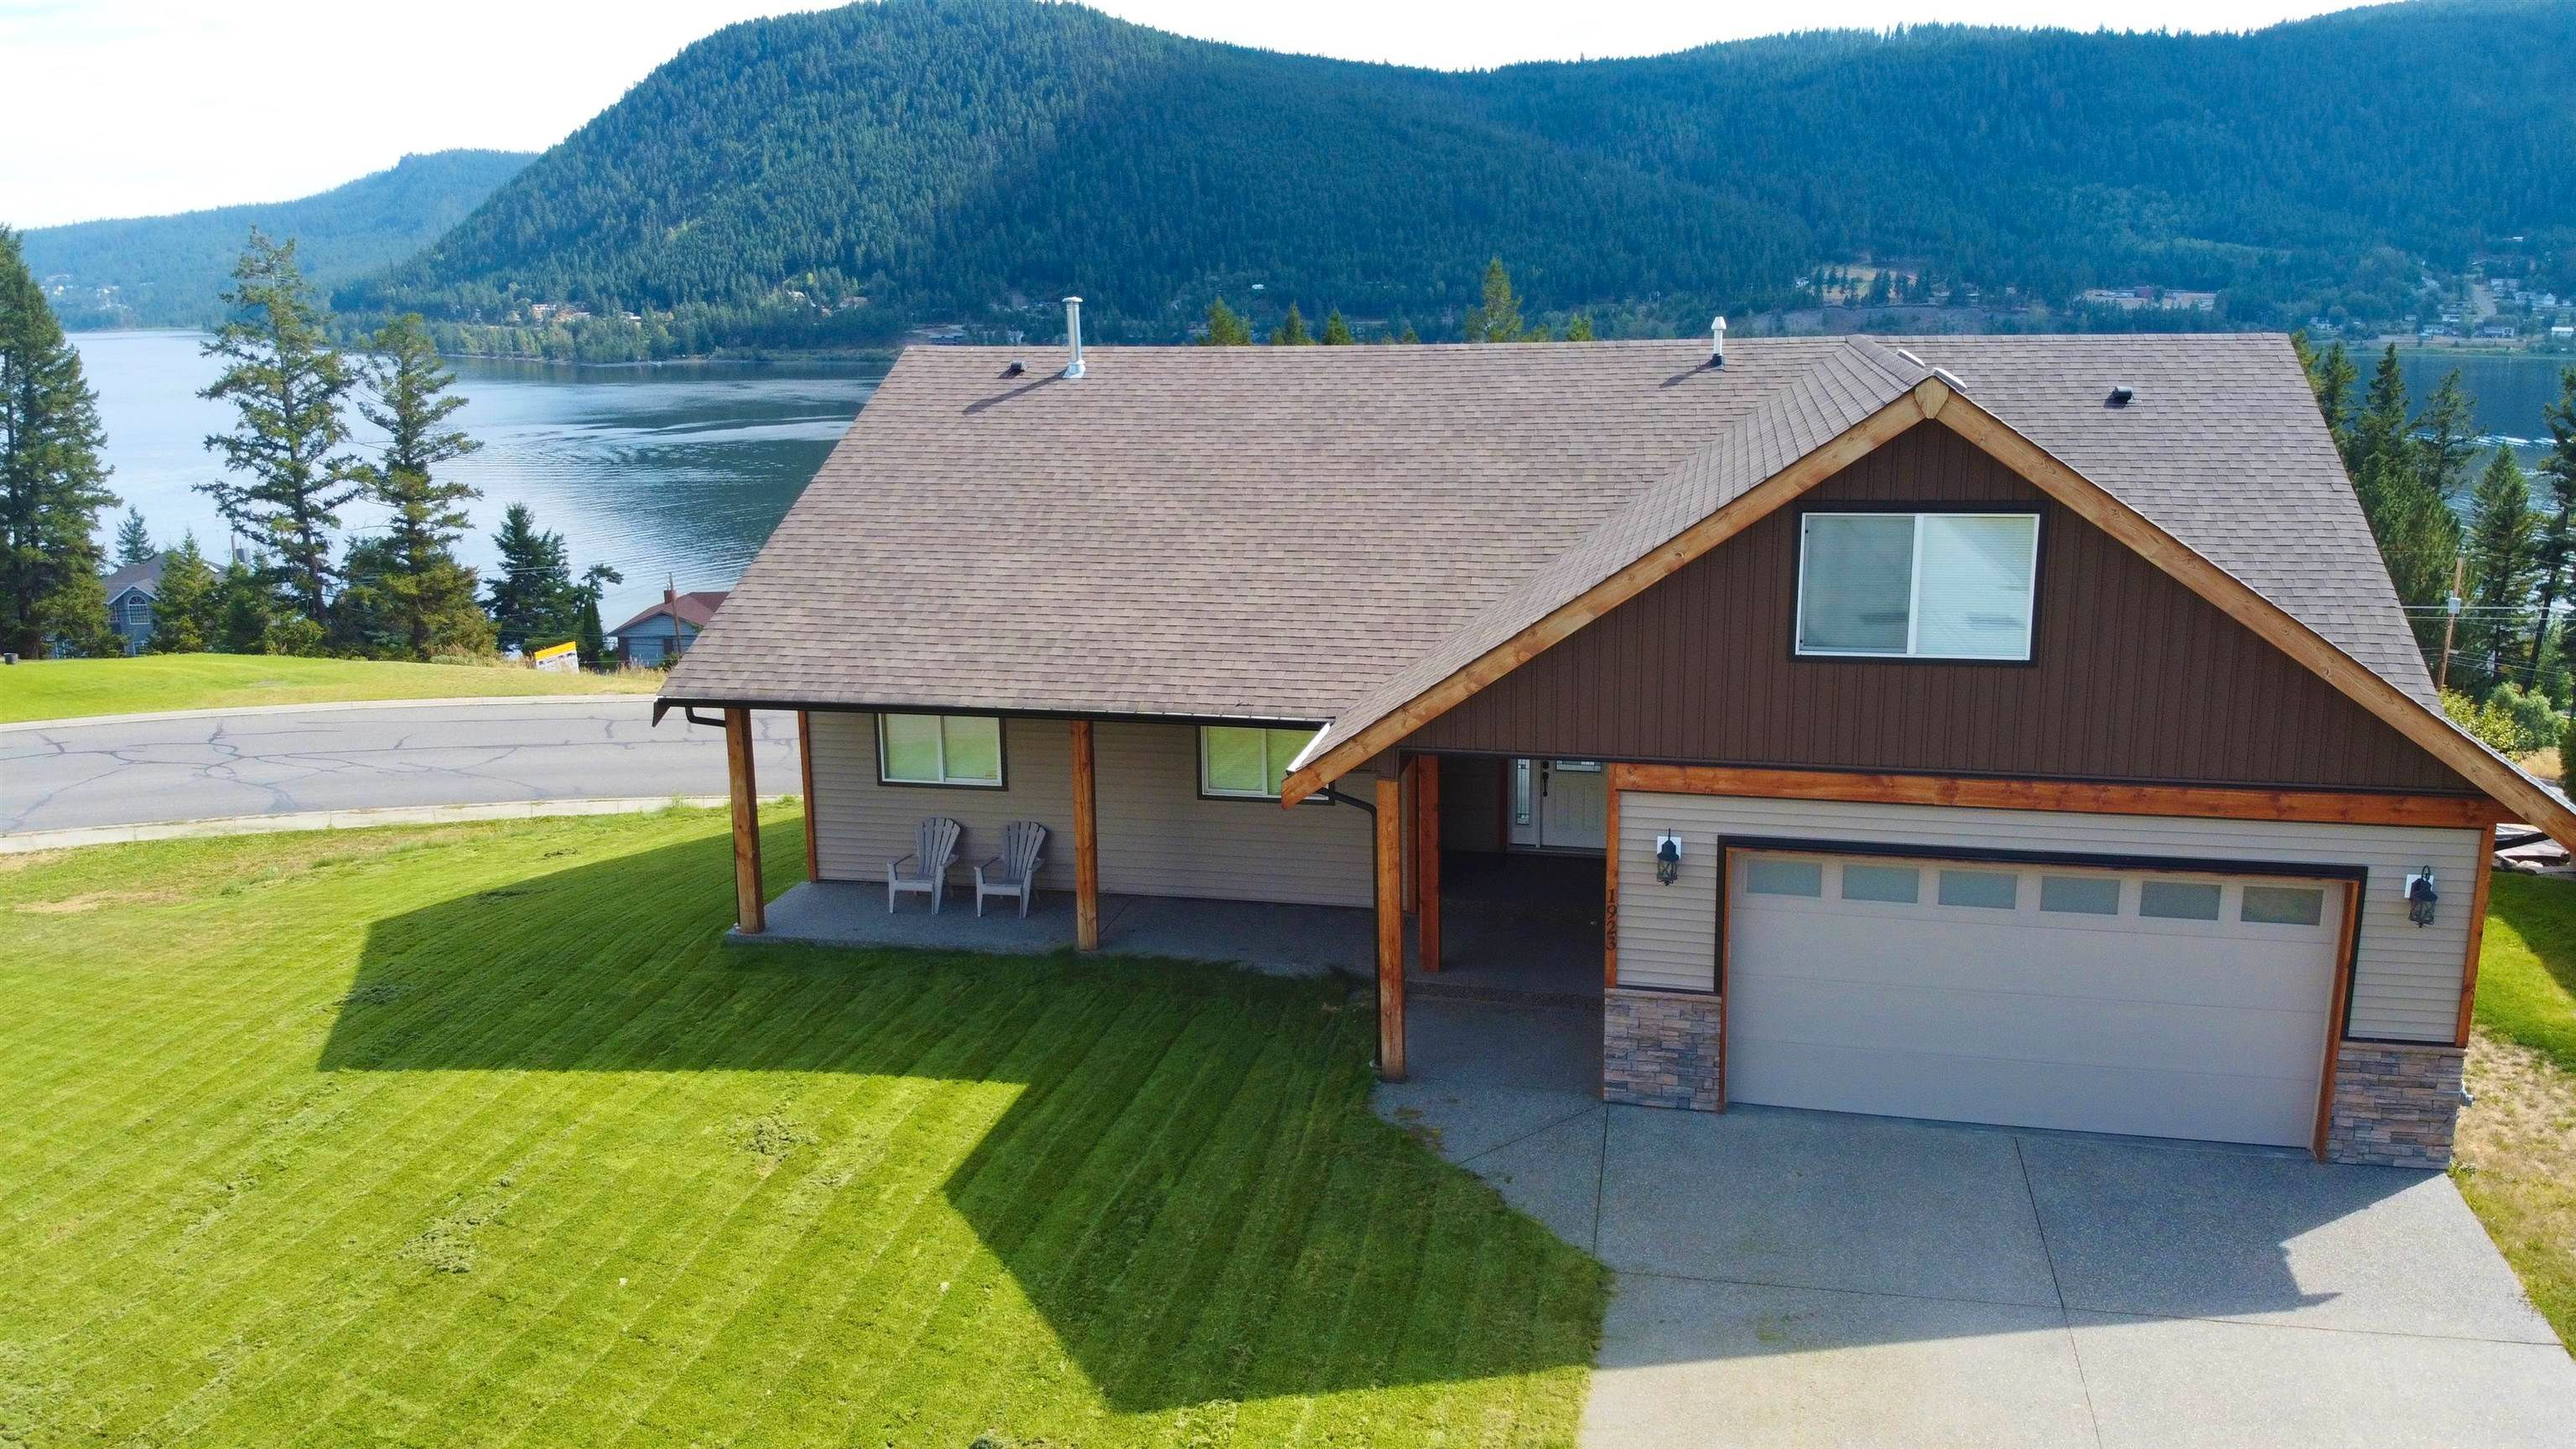 Main Photo: 1923 BOE Place in Williams Lake: Williams Lake - City House for sale (Williams Lake (Zone 27))  : MLS®# R2613434